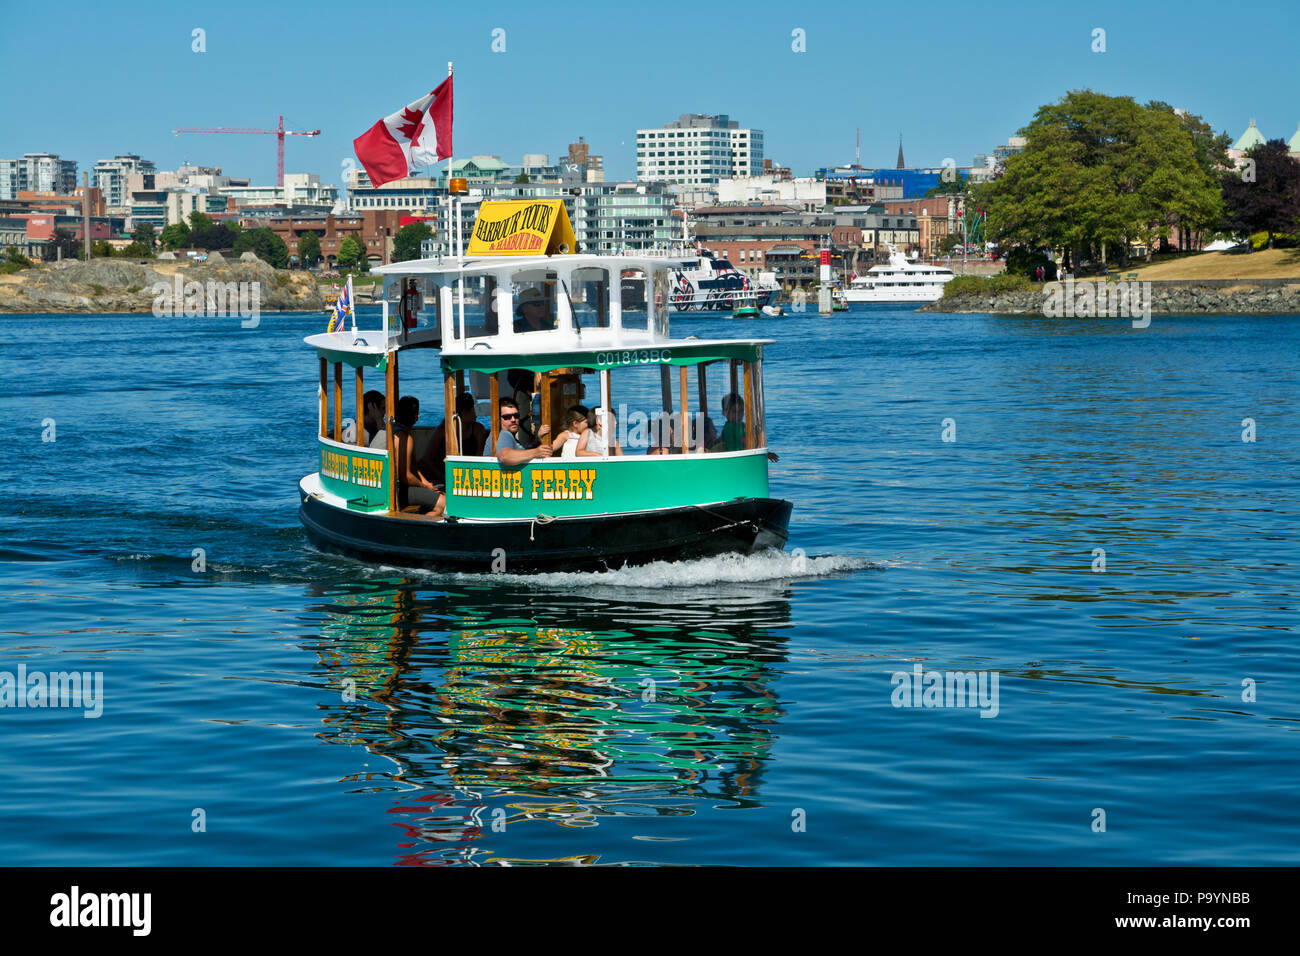 Victoria Harbour Ferry.  Harbour Ferries in Victoria, British Columbia, Canada, tourists on tours of the inner harbour and waterways. Victoria BC. Stock Photo